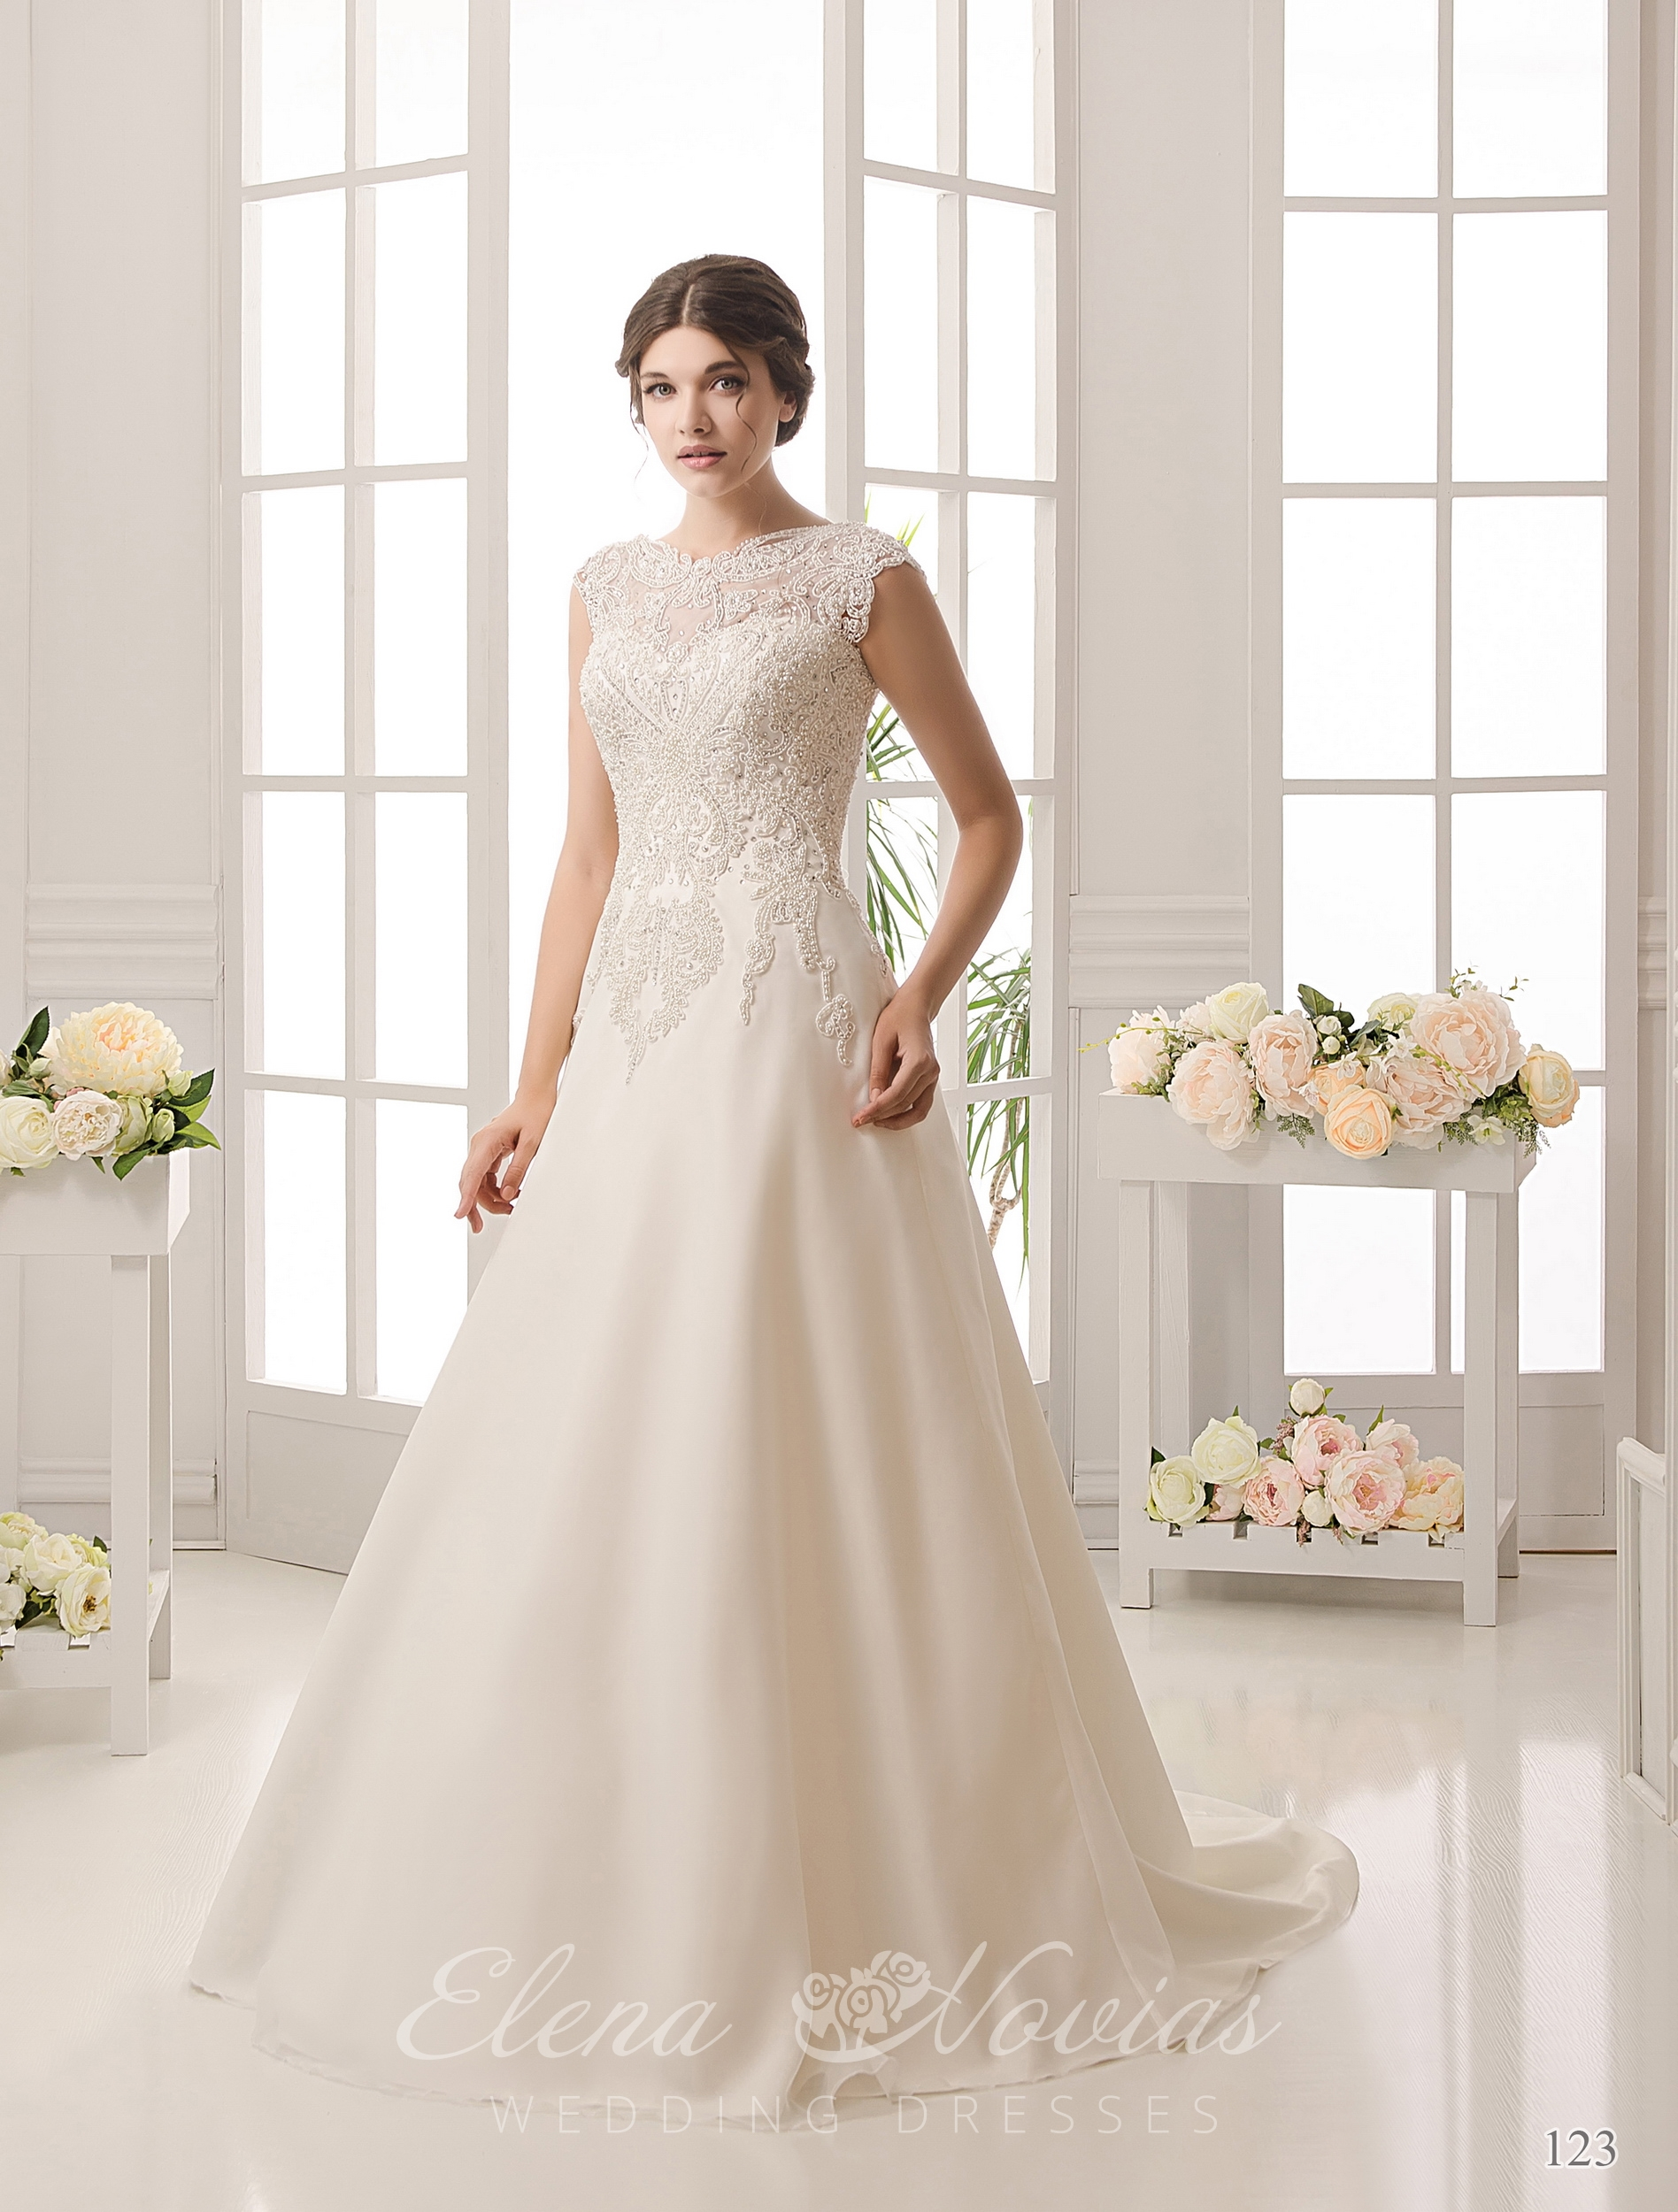 Wedding dress wholesale 123